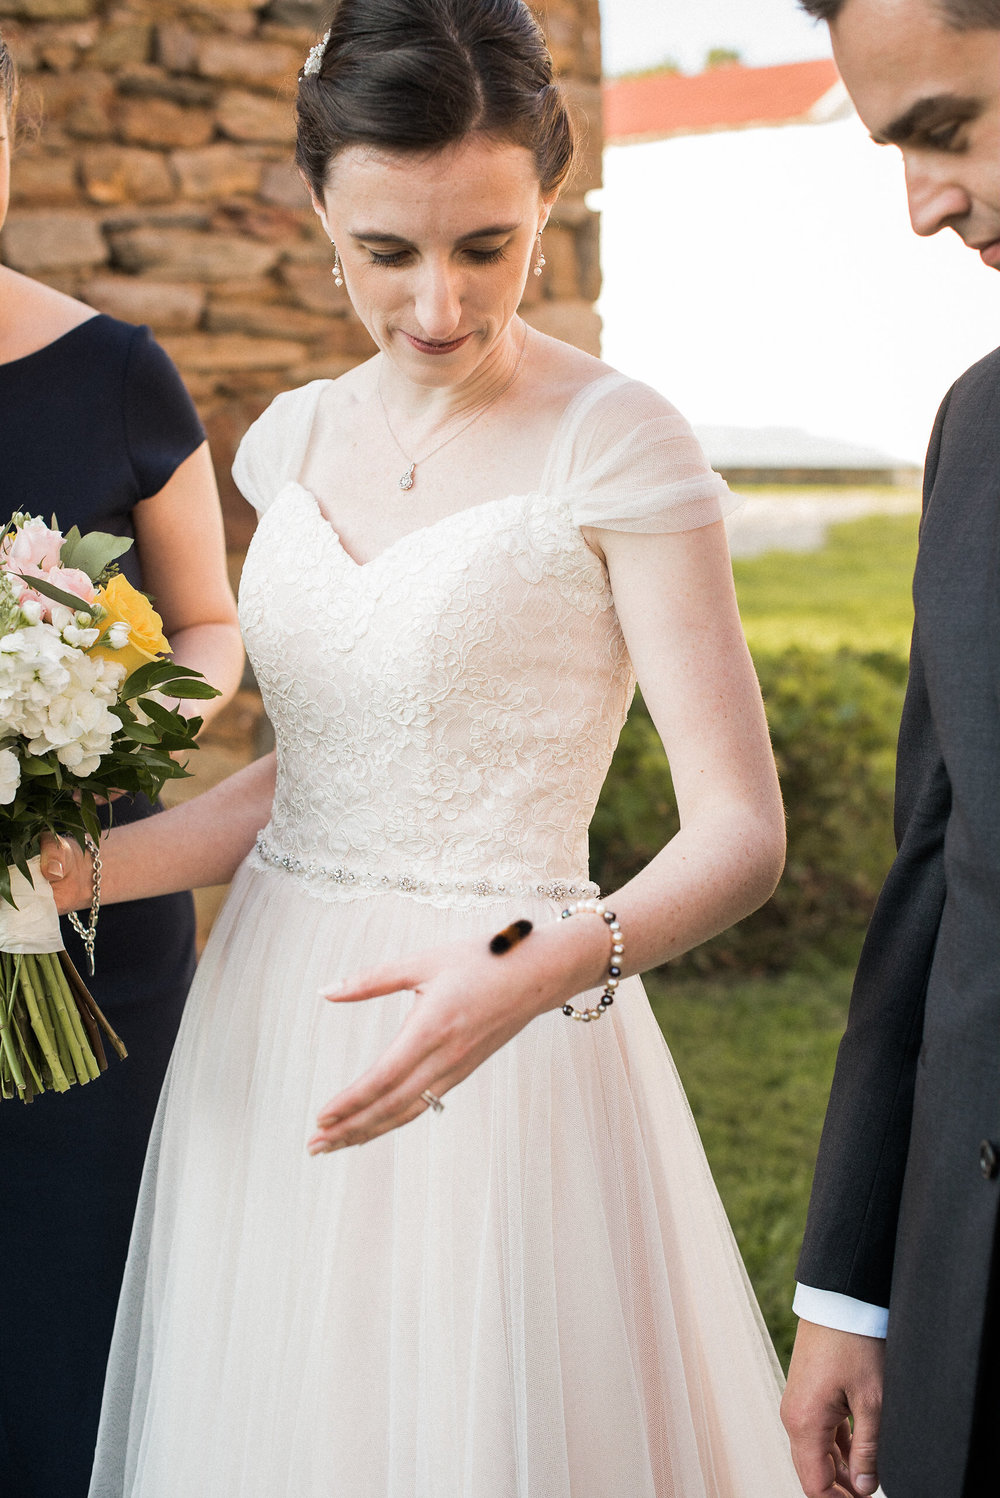 Bride with caterpillar on arm